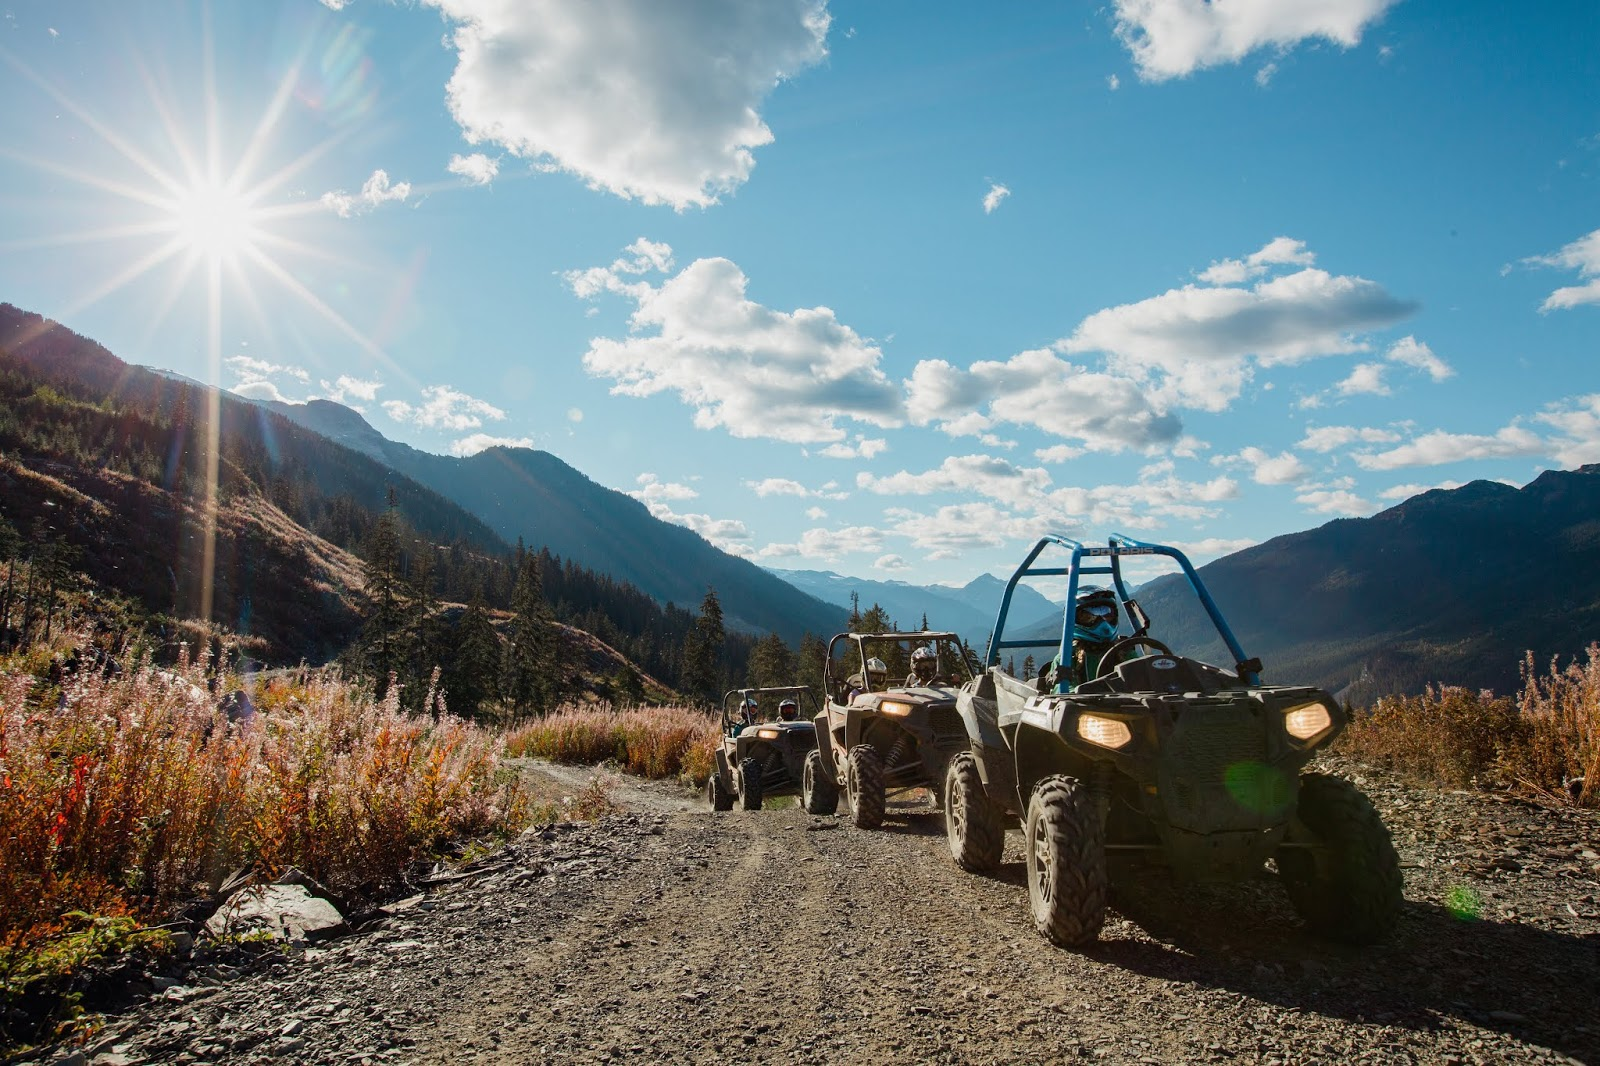 RZR Tour in Whistler